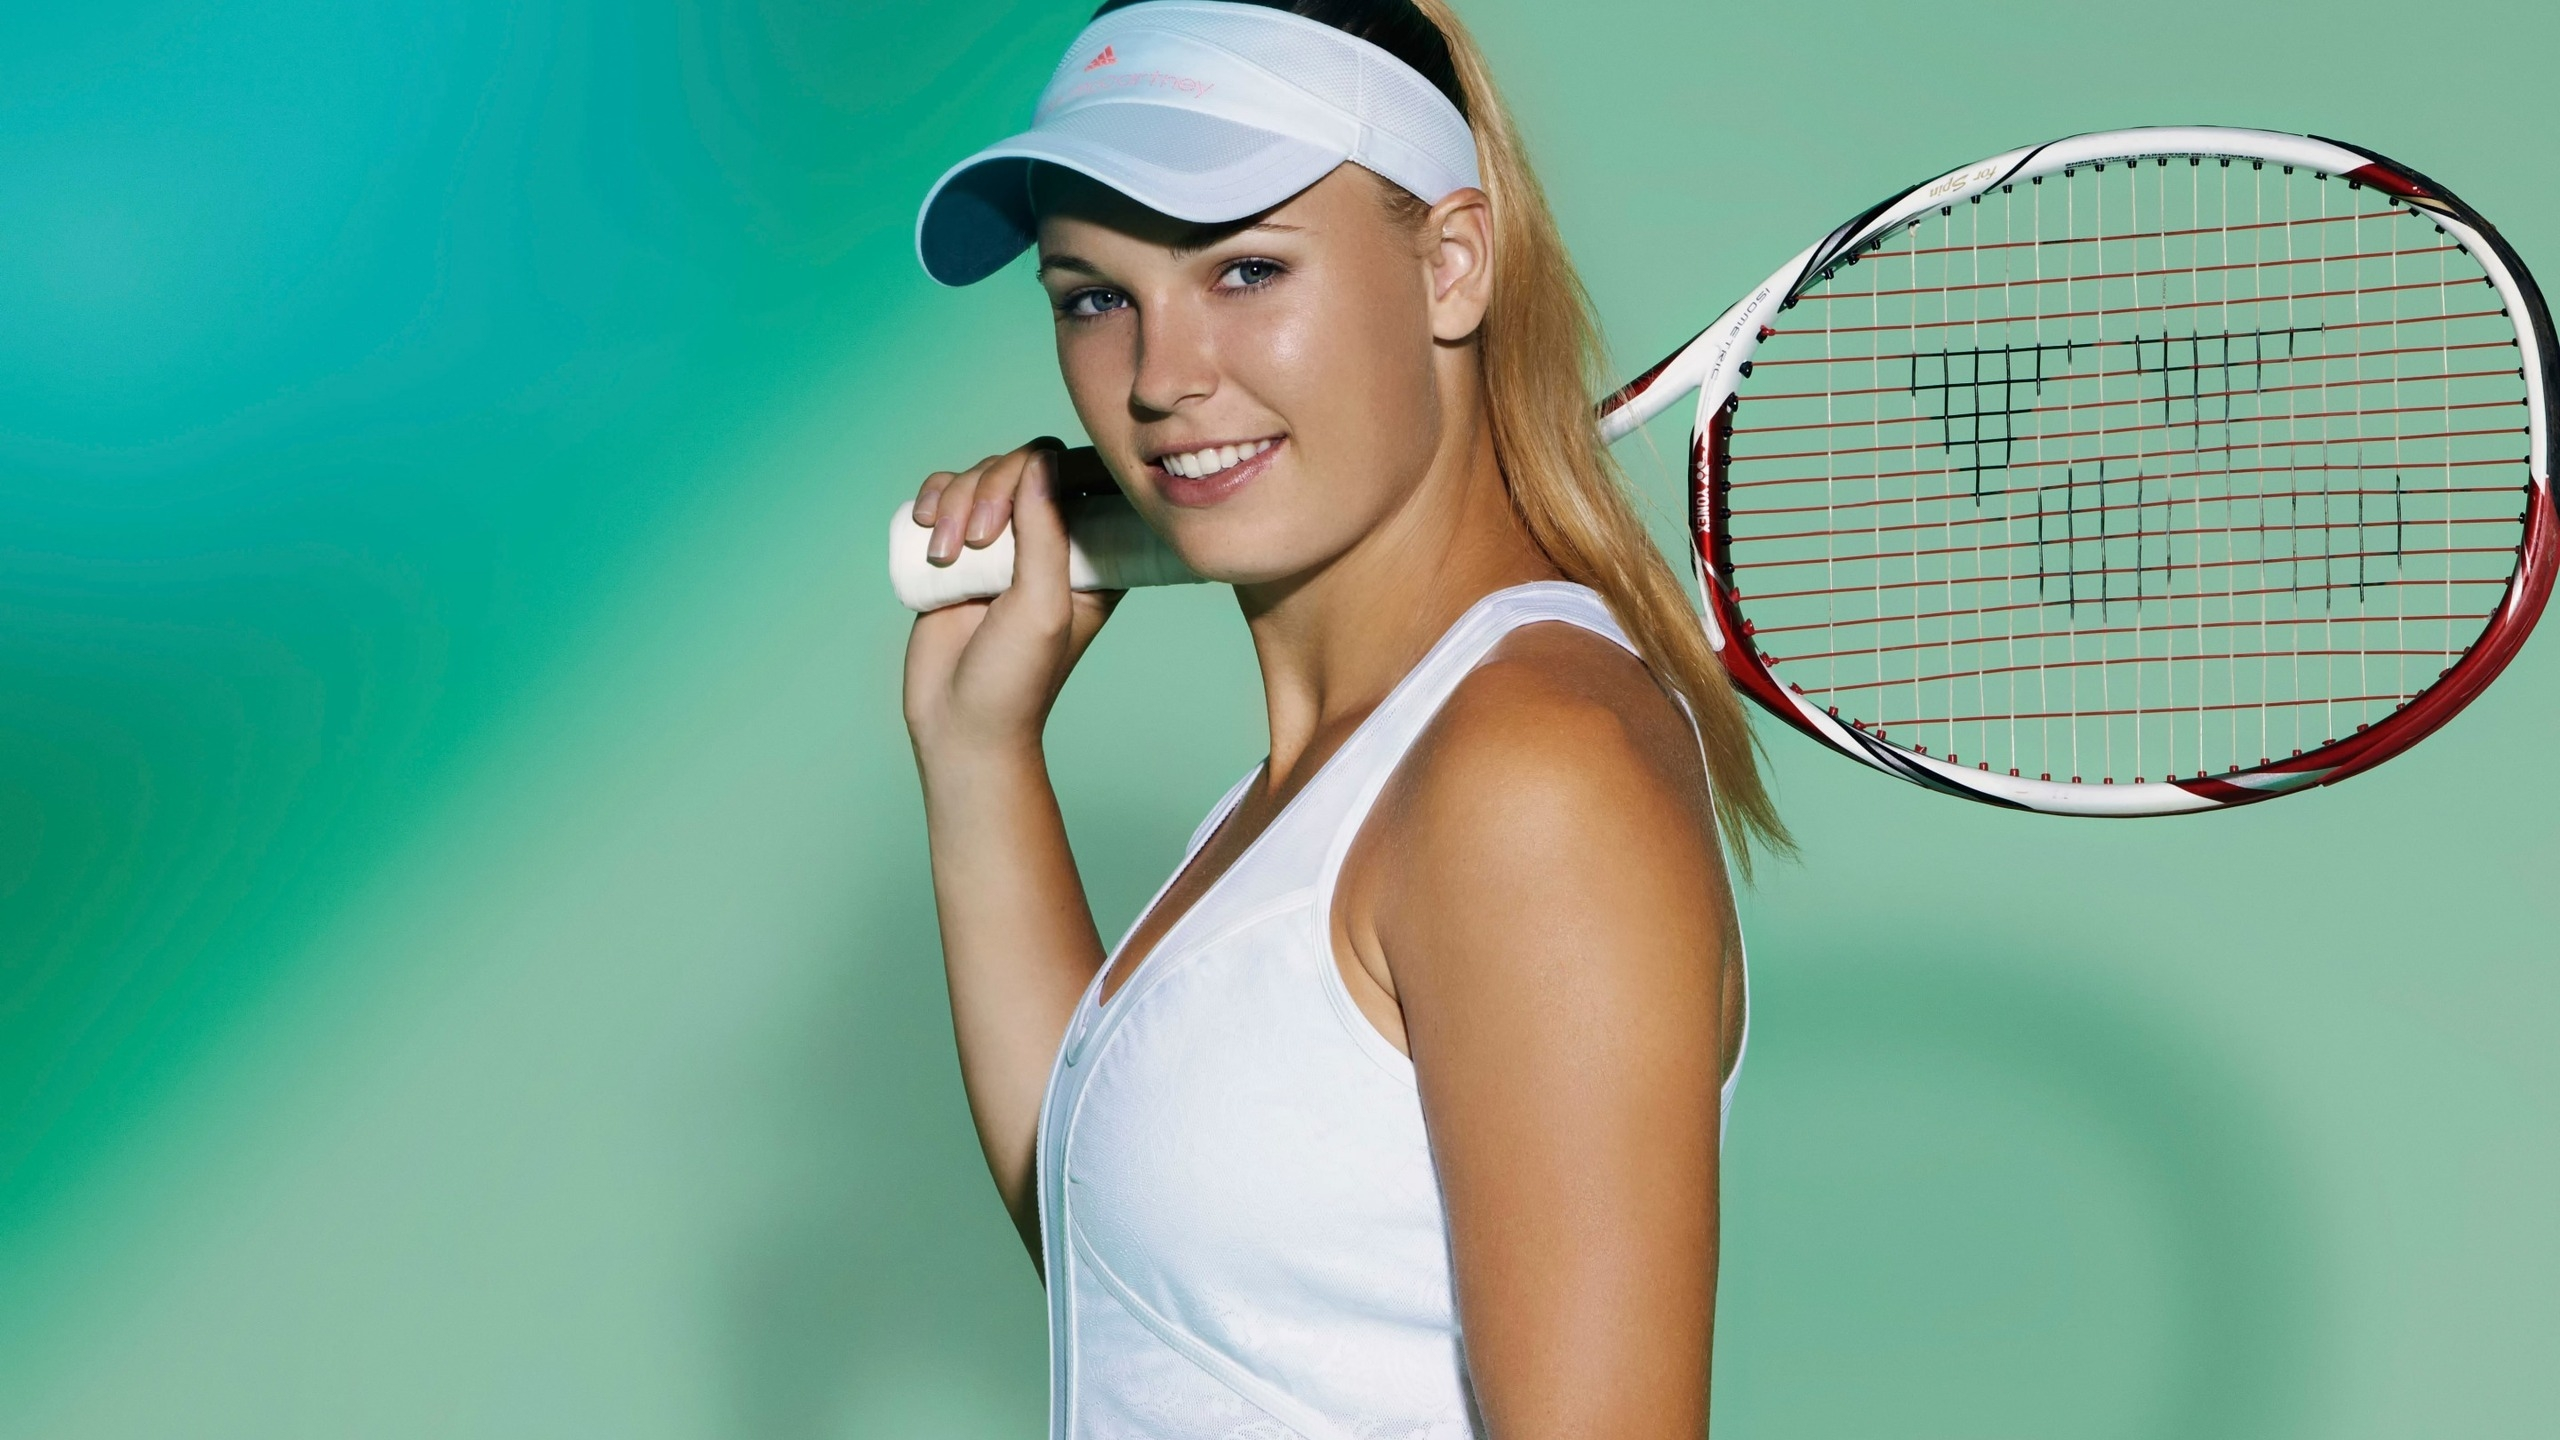 Caroline Wozniacki Danish Tennis Player for 2560x1440 HDTV resolution